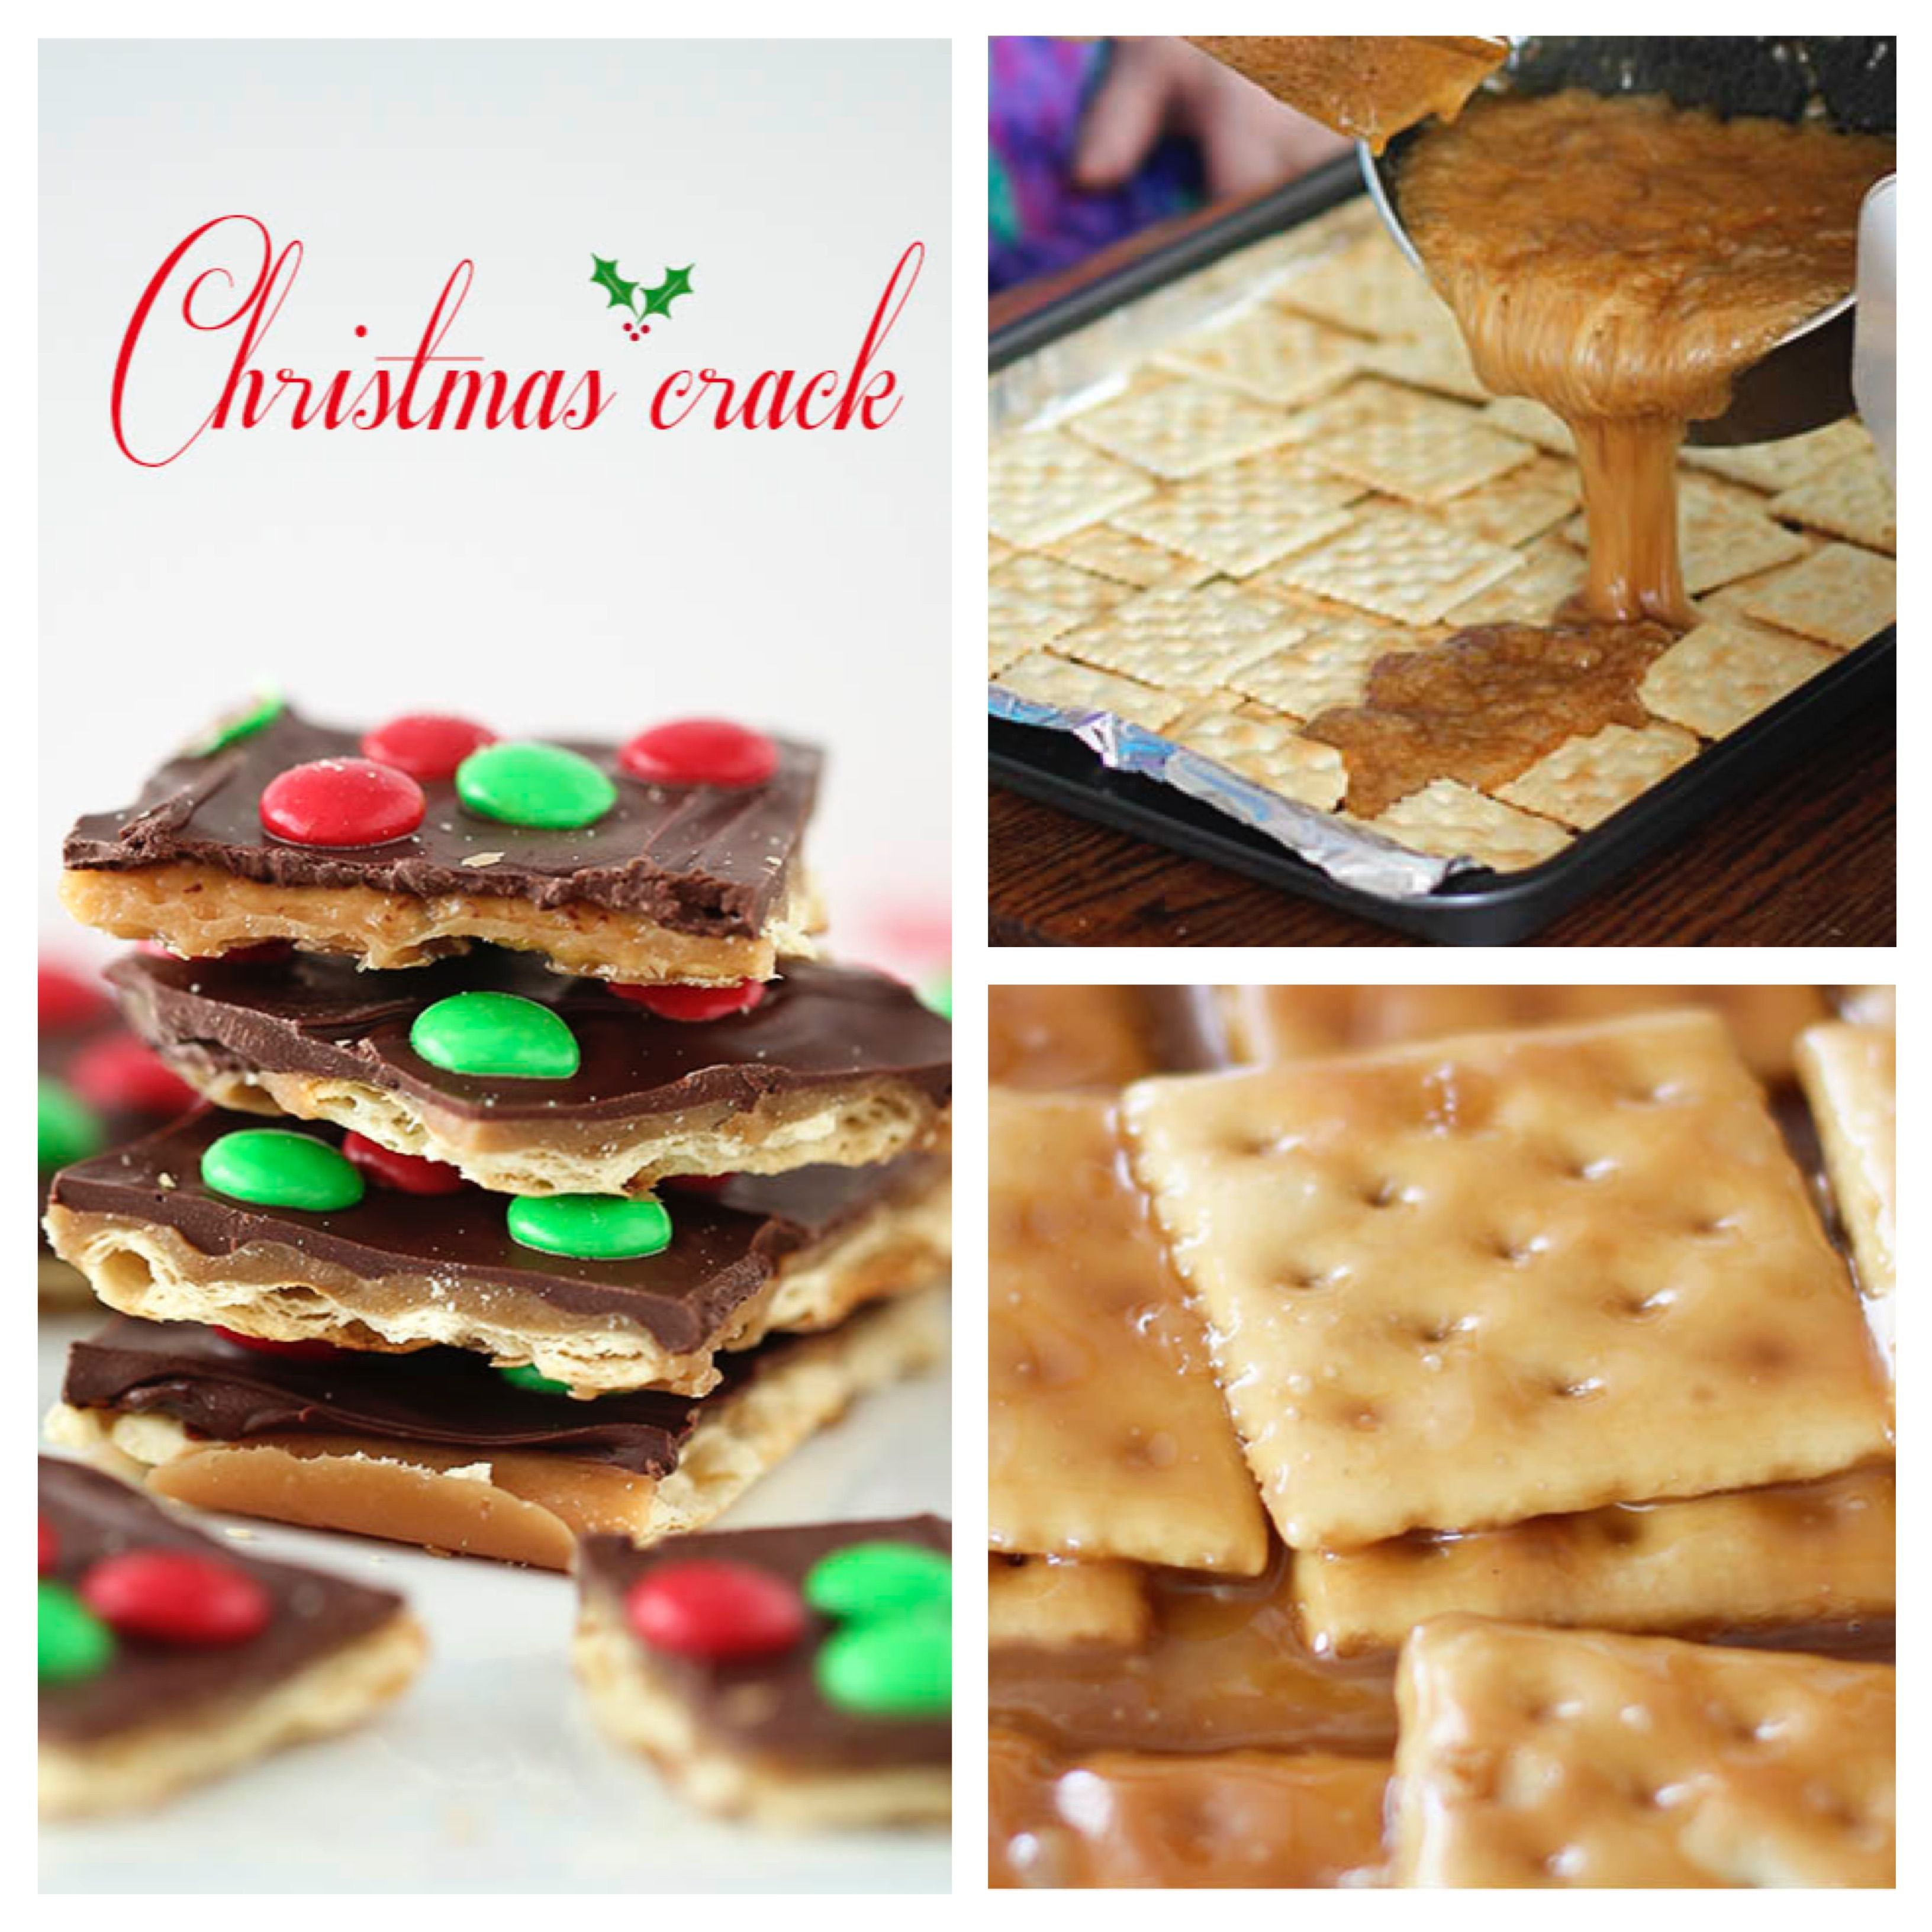 Cooking Pinterest Christmas Crack Cookies Recipe: Pin On Holiday Ideas & Recipies